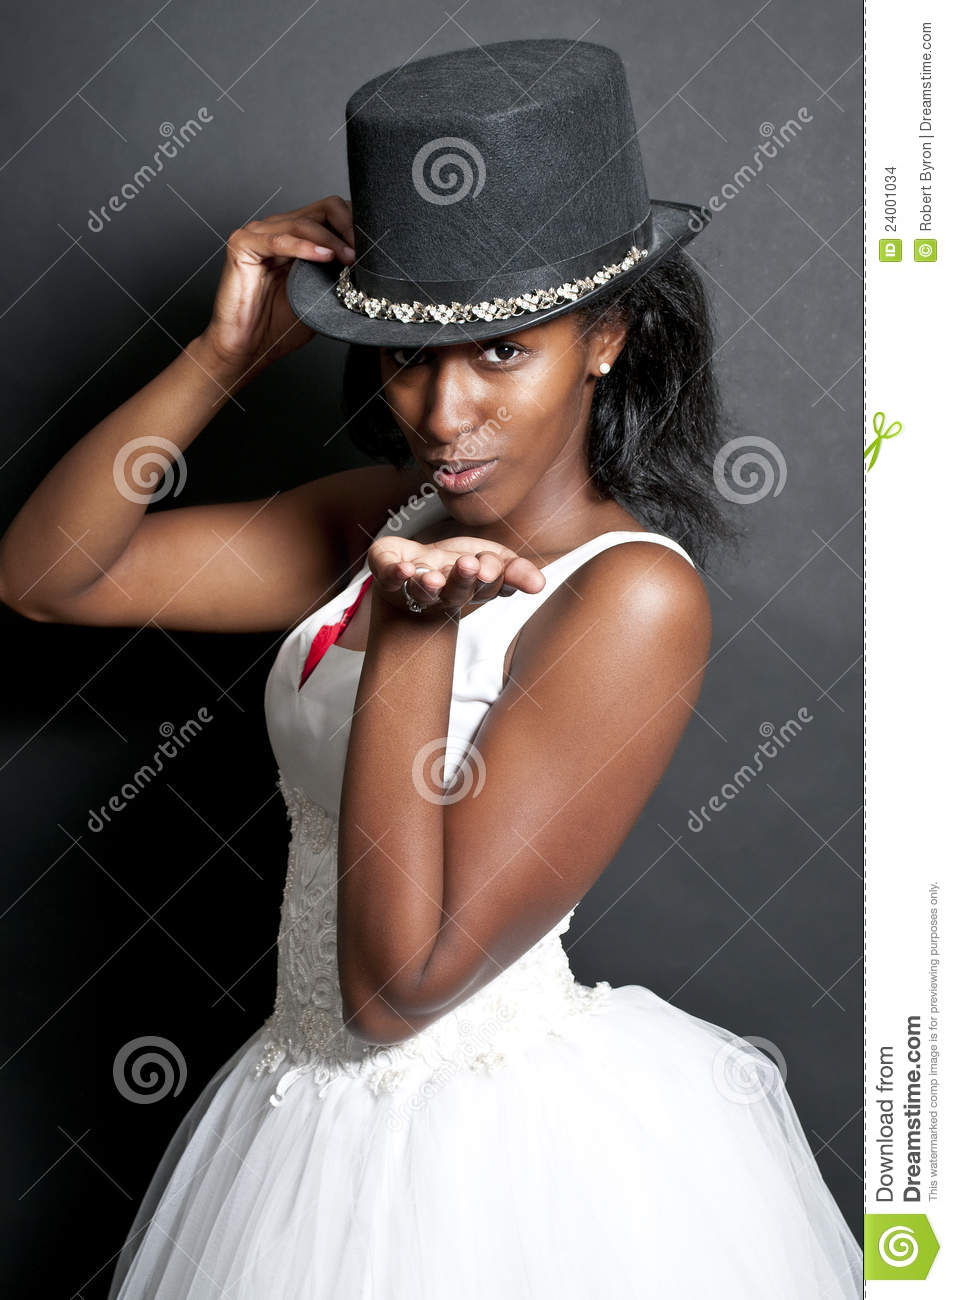 Black Woman In Wedding Dress Stock Photo Image Of Beautiful Bride 24001034,Beach Dresses For Weddings Mother Of The Bride